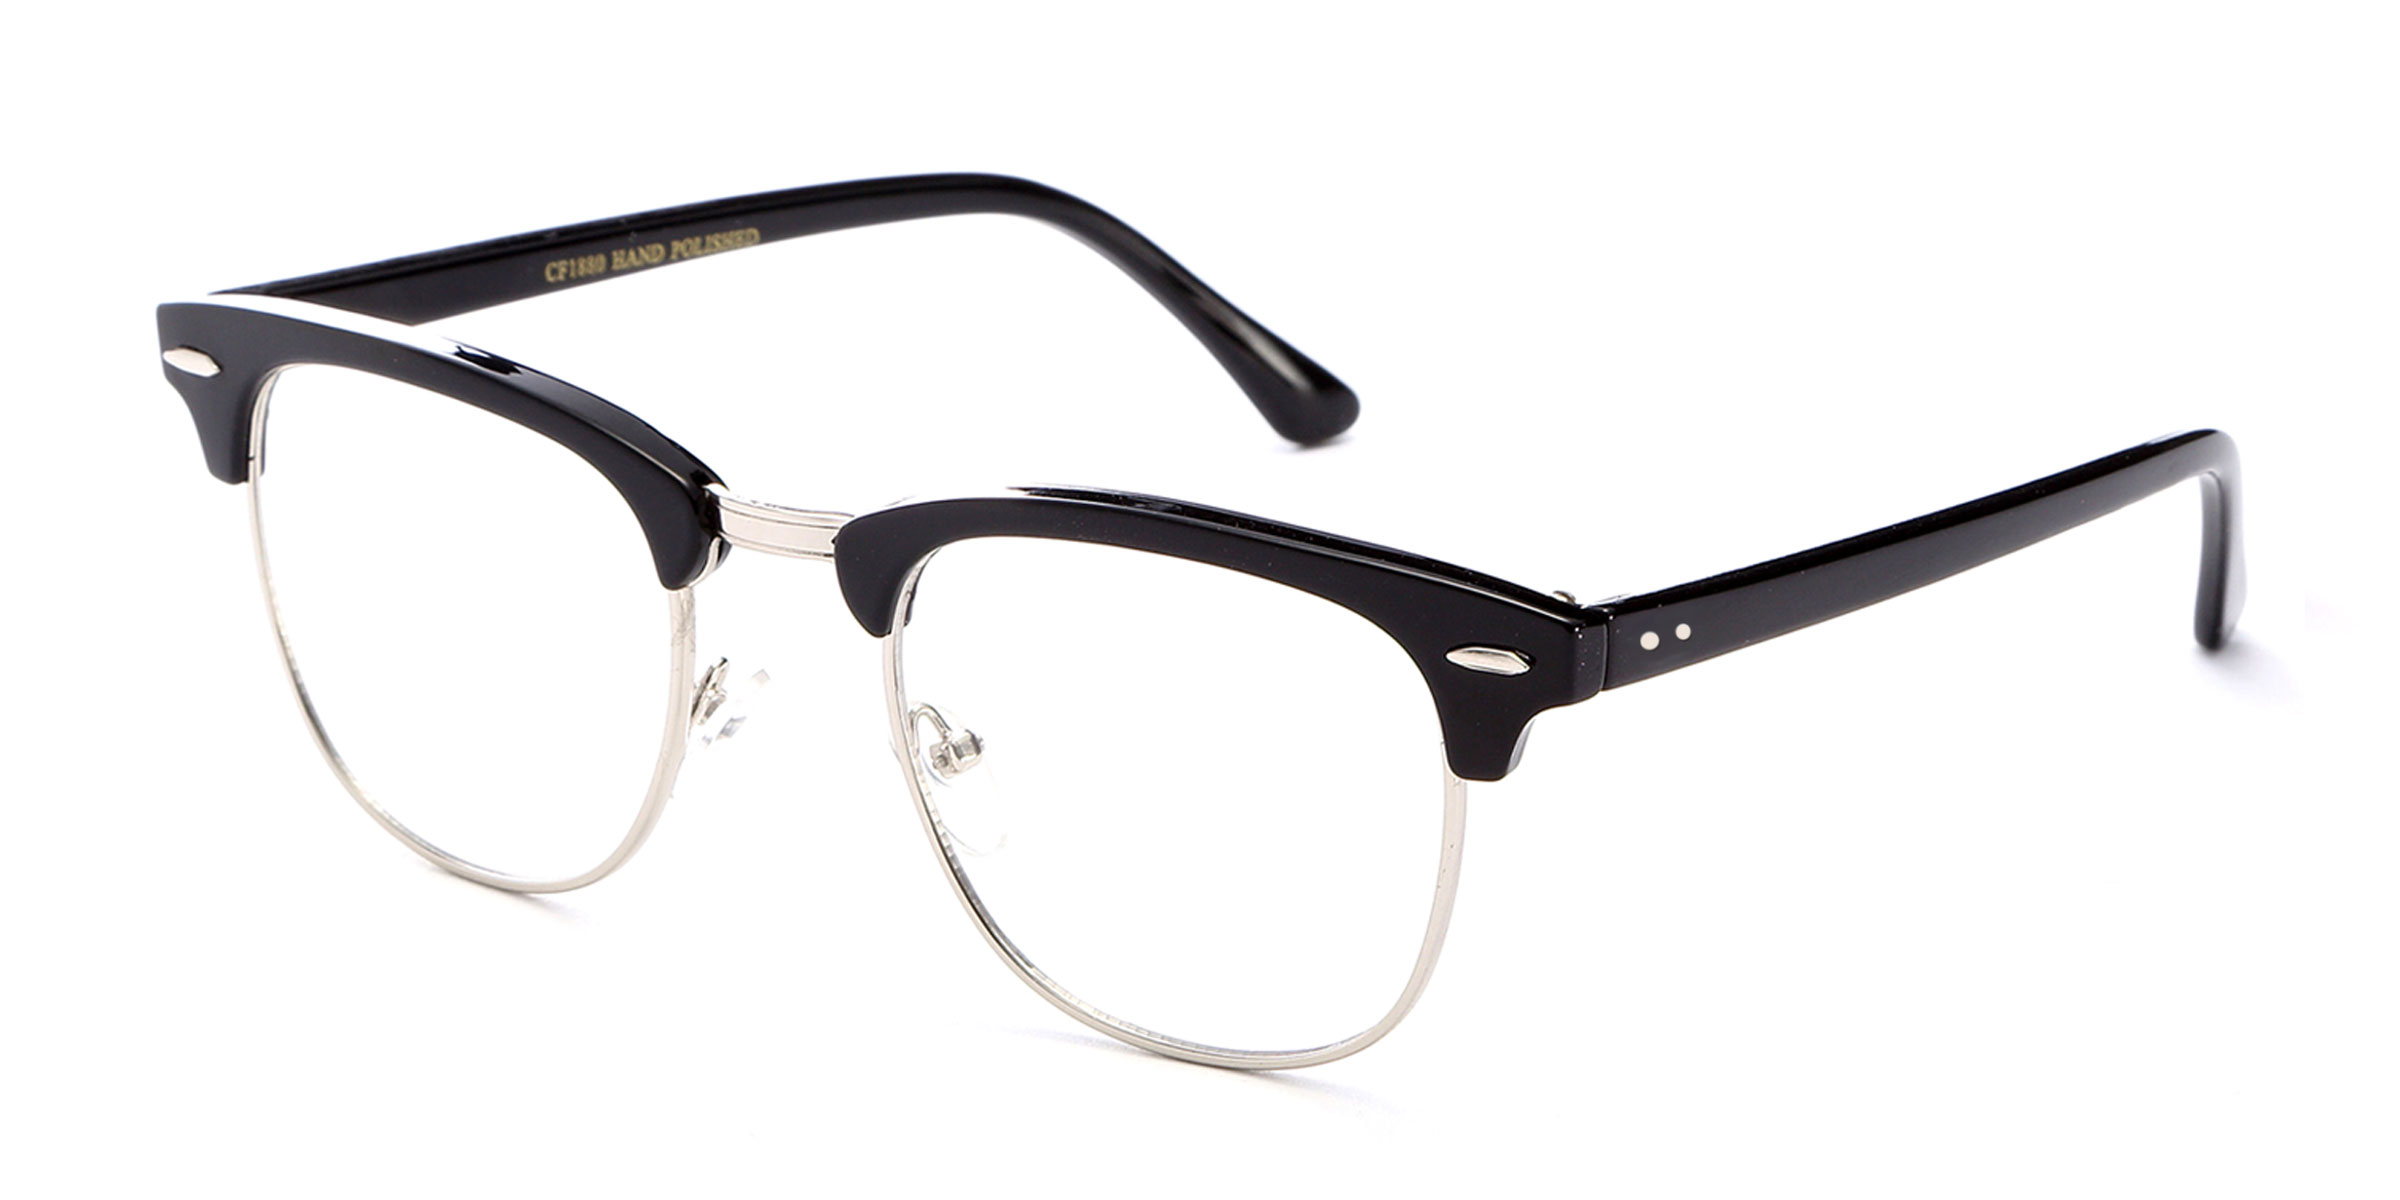 vintage style nerdy half frame reading glasses with metal